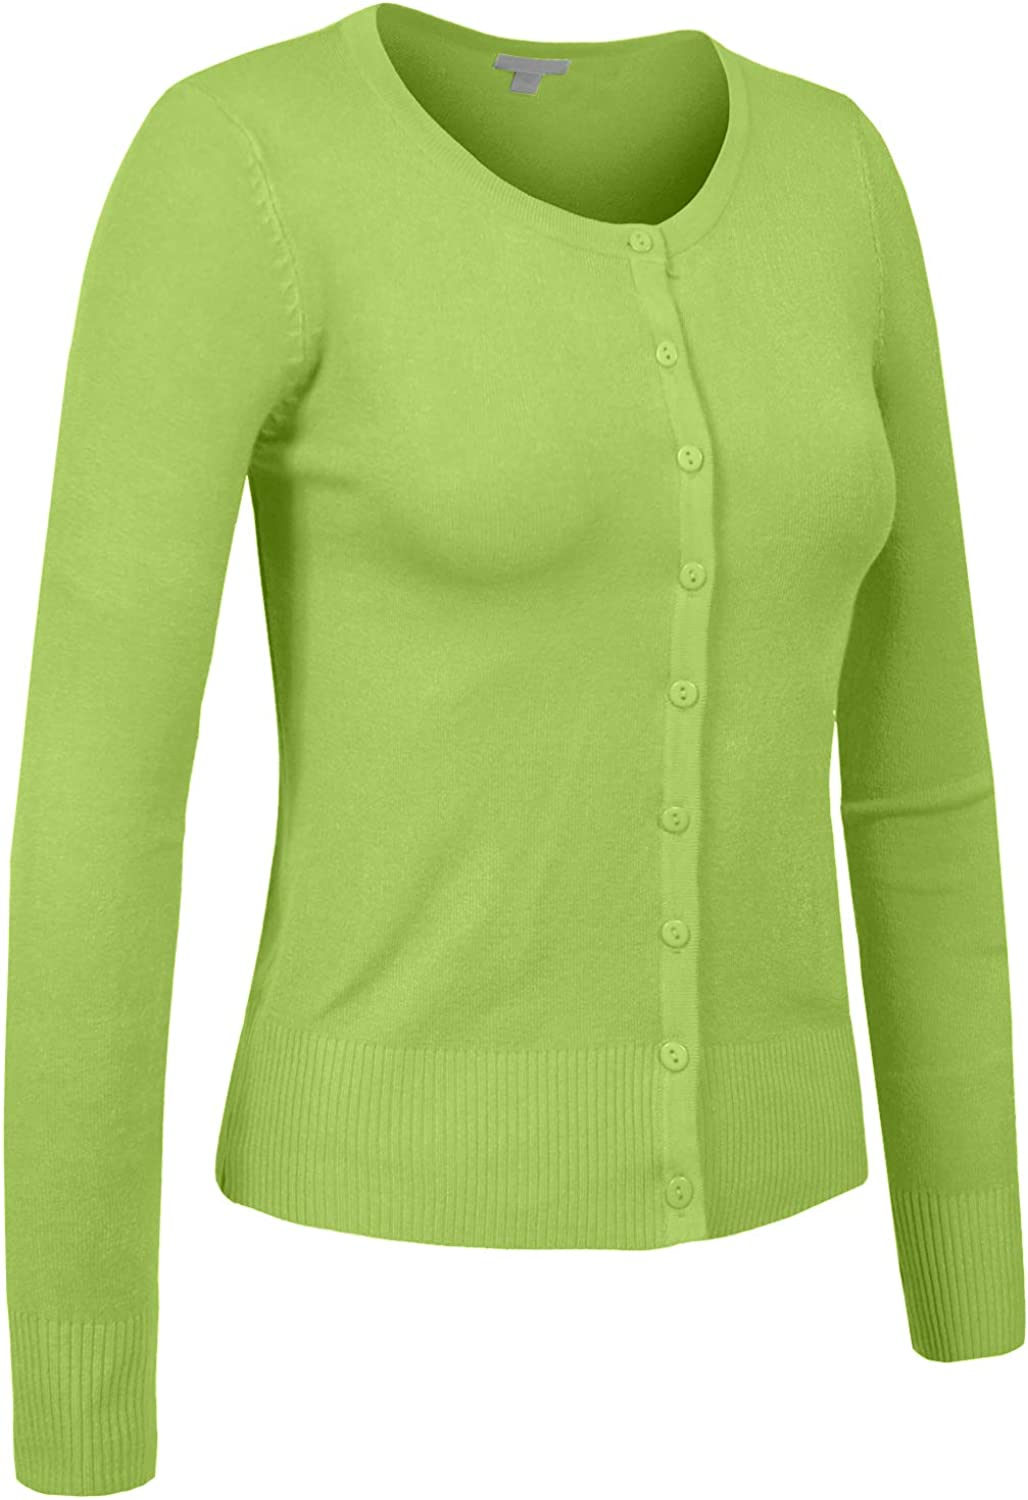 J. LOVNY Womens Basic Casual Light Crew Neck Button Down Cardigan Sweater S-3XL